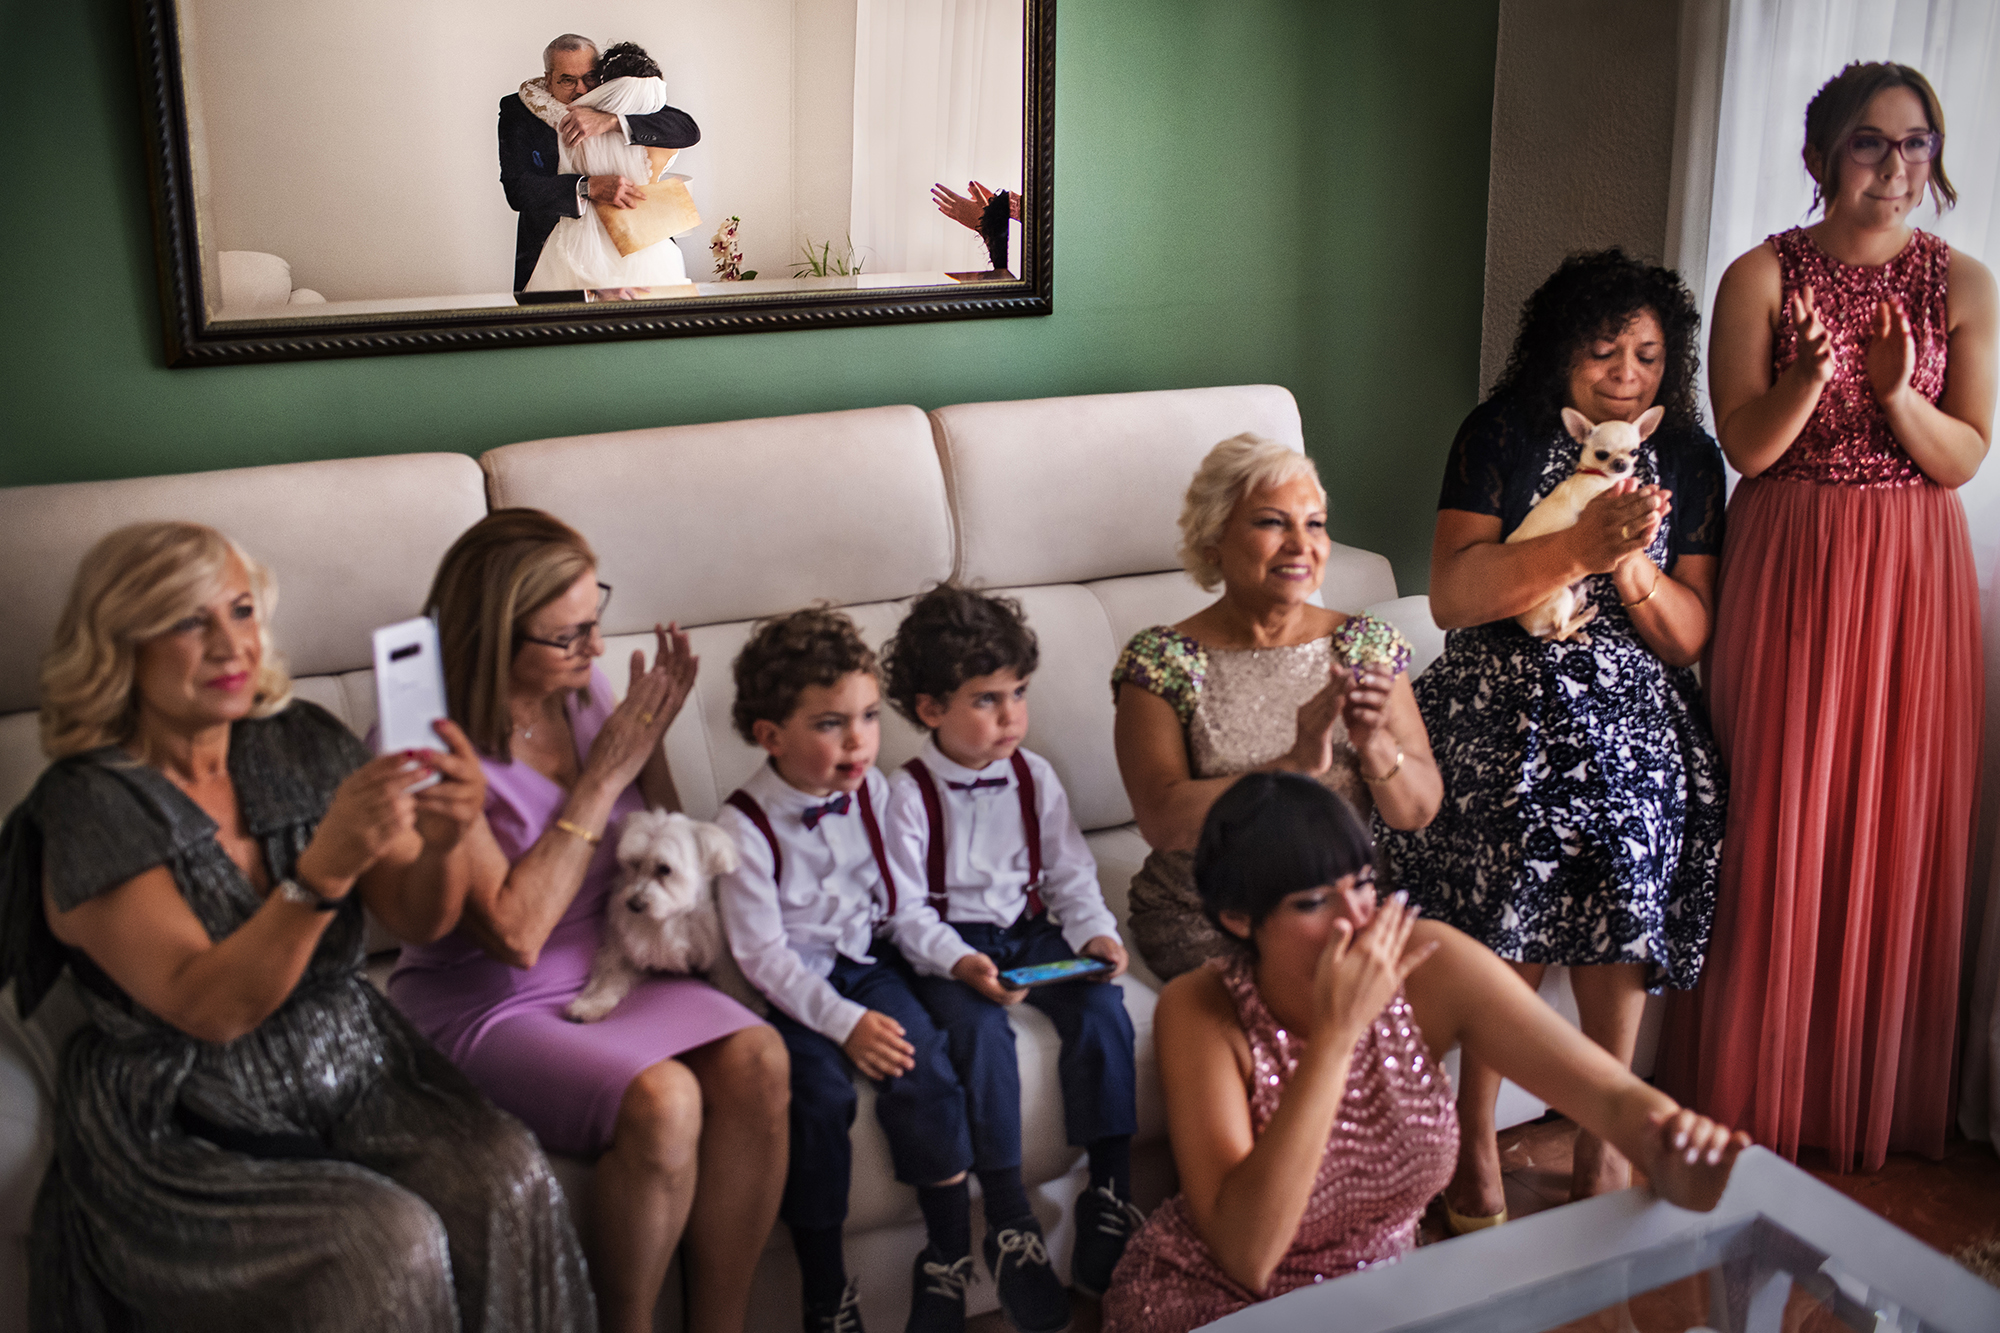 Reflection of father and bride embracing in room full of family member - photographed by Victor Lax - Spain